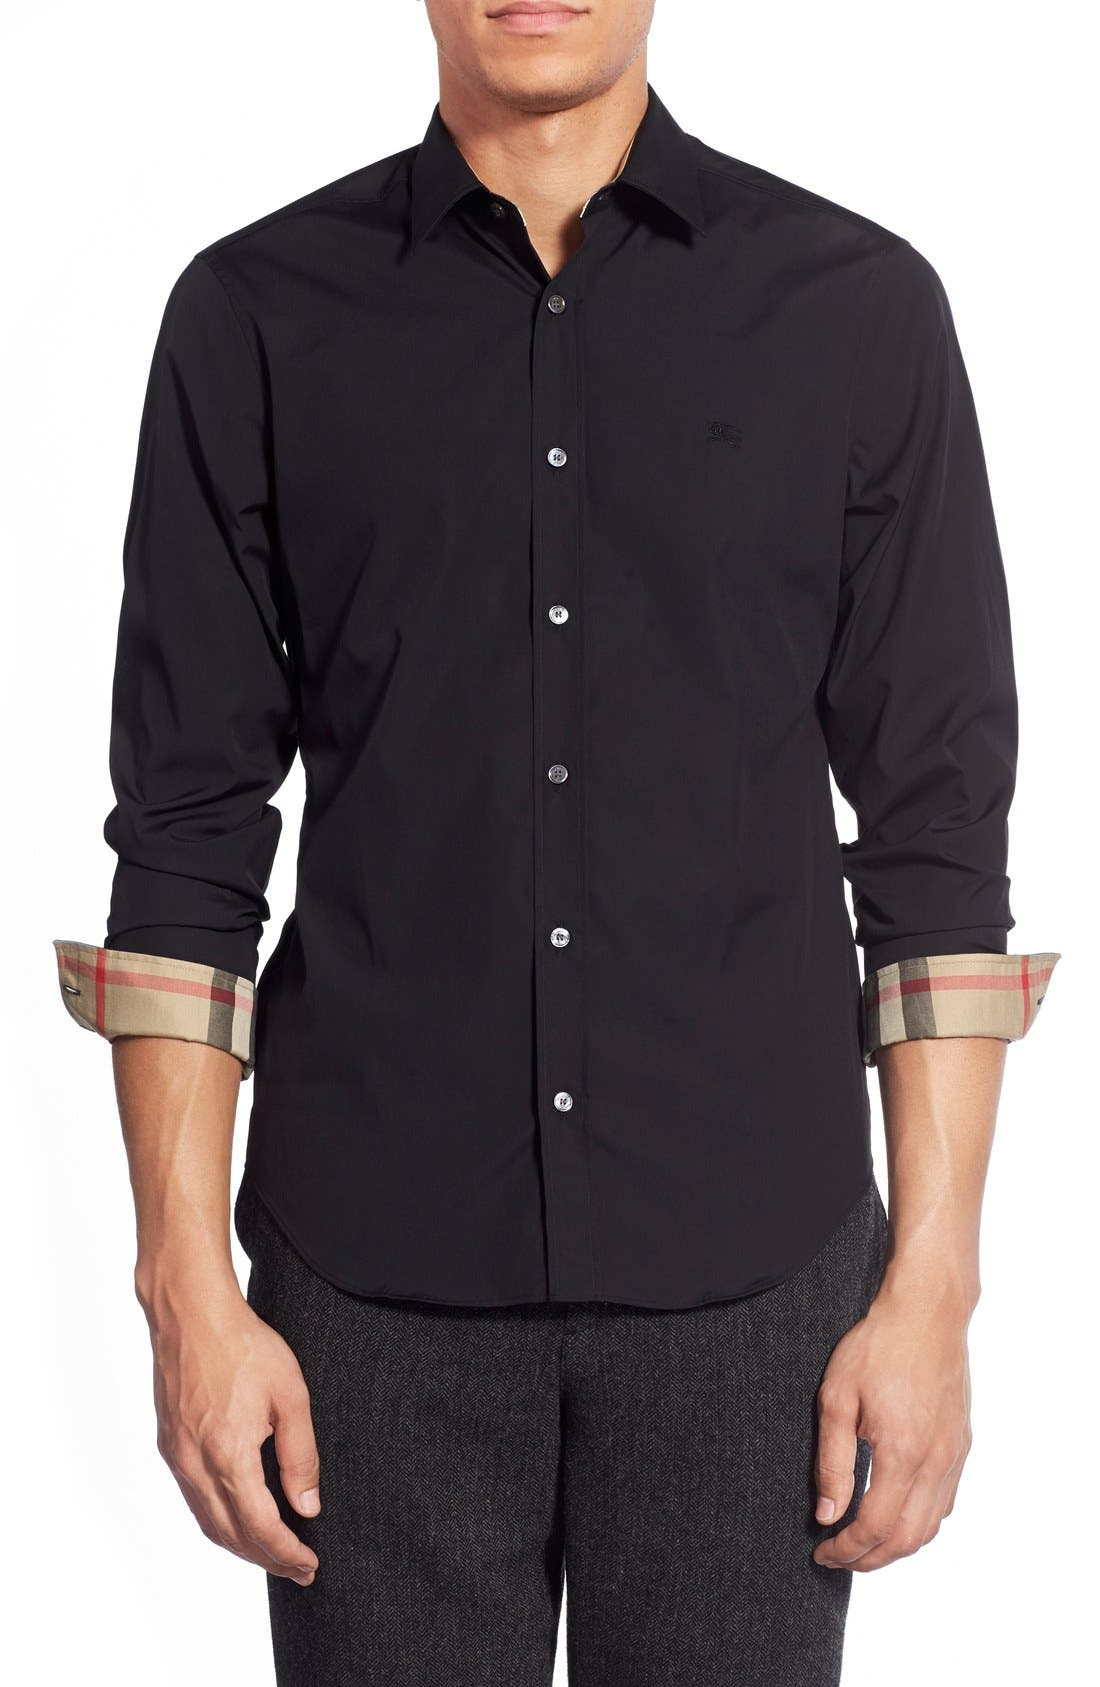 All Black Burberry Shirt